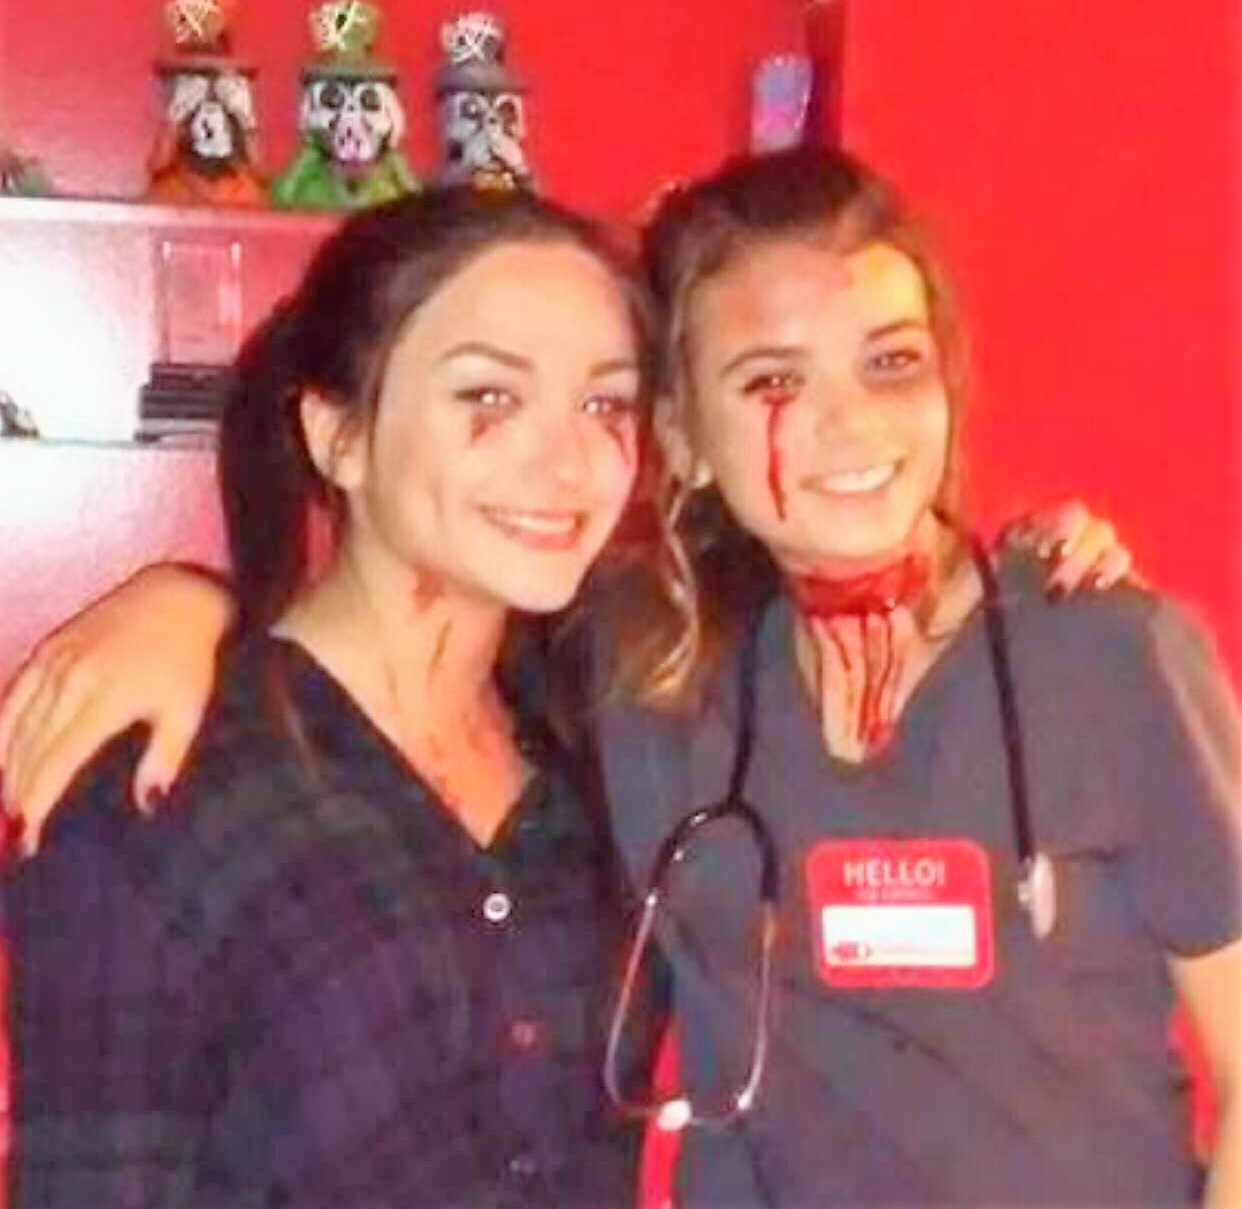 Taylor Lempa, junior, (left) and Alysa Stagliano, freshman, show they are not too old for Halloween.